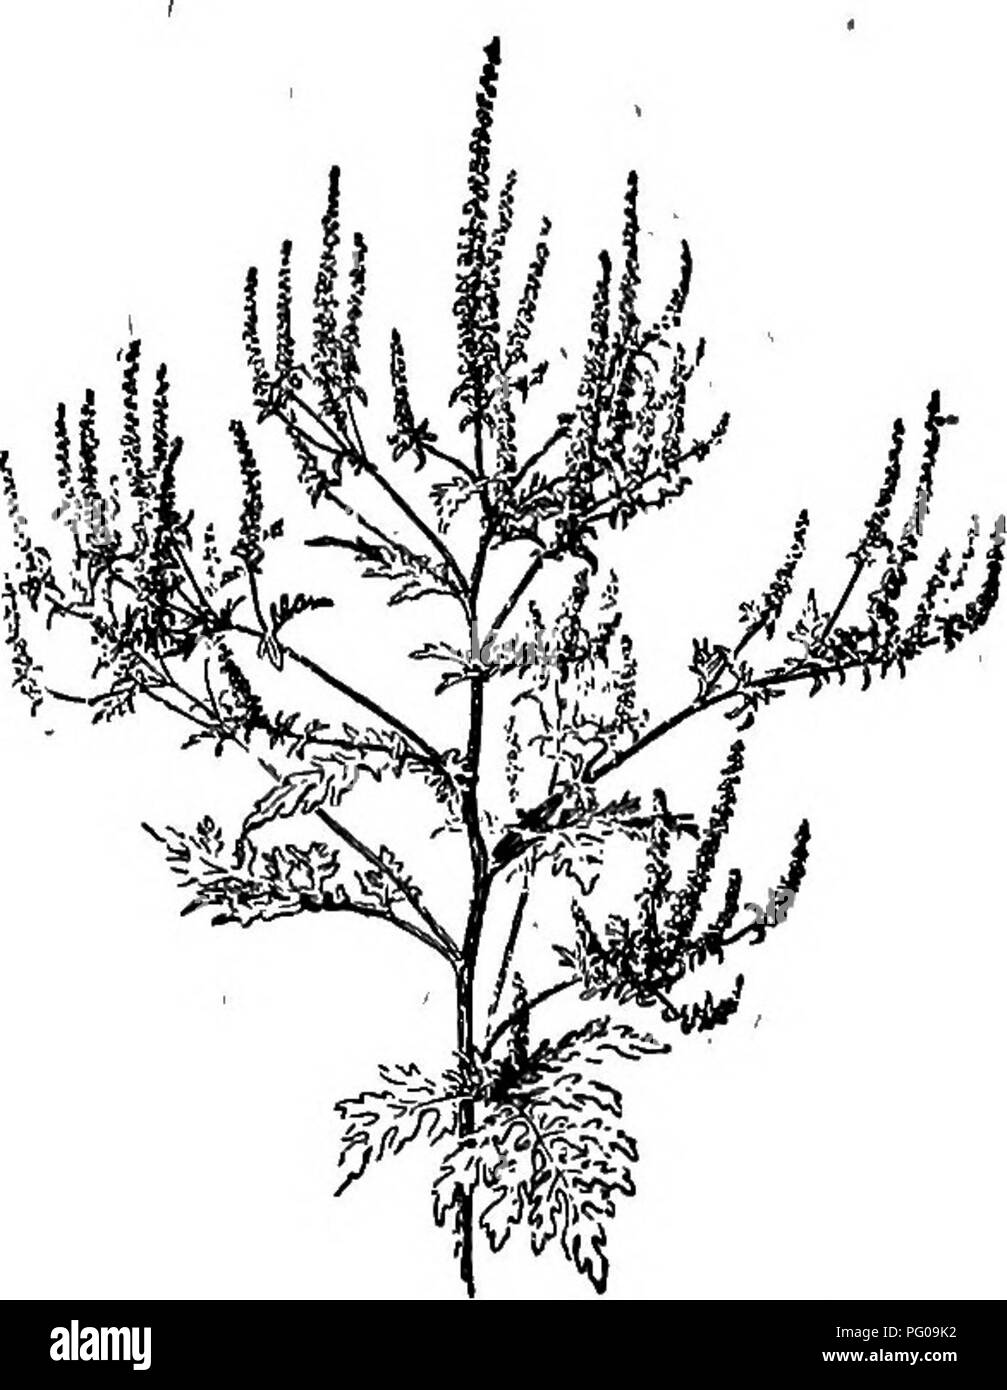 . Selected western flora : Manitoba, Saskatchewan, Alberta . Botany; Botany; Botany. COMPOSITiB 149 1. A. trfflda, L. Great Raq- 1 WEED. Annual, stout, 2-10 ft. high, hairy; leaves opposite, all ex- cept the upper deeply 3-lobed; petioles margined. Rich soil, —- a not uncommon weed, espe- cially about dwellings, Man. and westward. 2. A. pulostachya, DC. Per- ennial RAGWEED. Much branched, reclining, and spreading from a creeping rootstock; leaves opposite, once pinnatifid, the lobes of the upper entire, those of the lower often incised. Dry soil, some- times a troublesome weed, Man.-Alta.. Fig - Stock Image